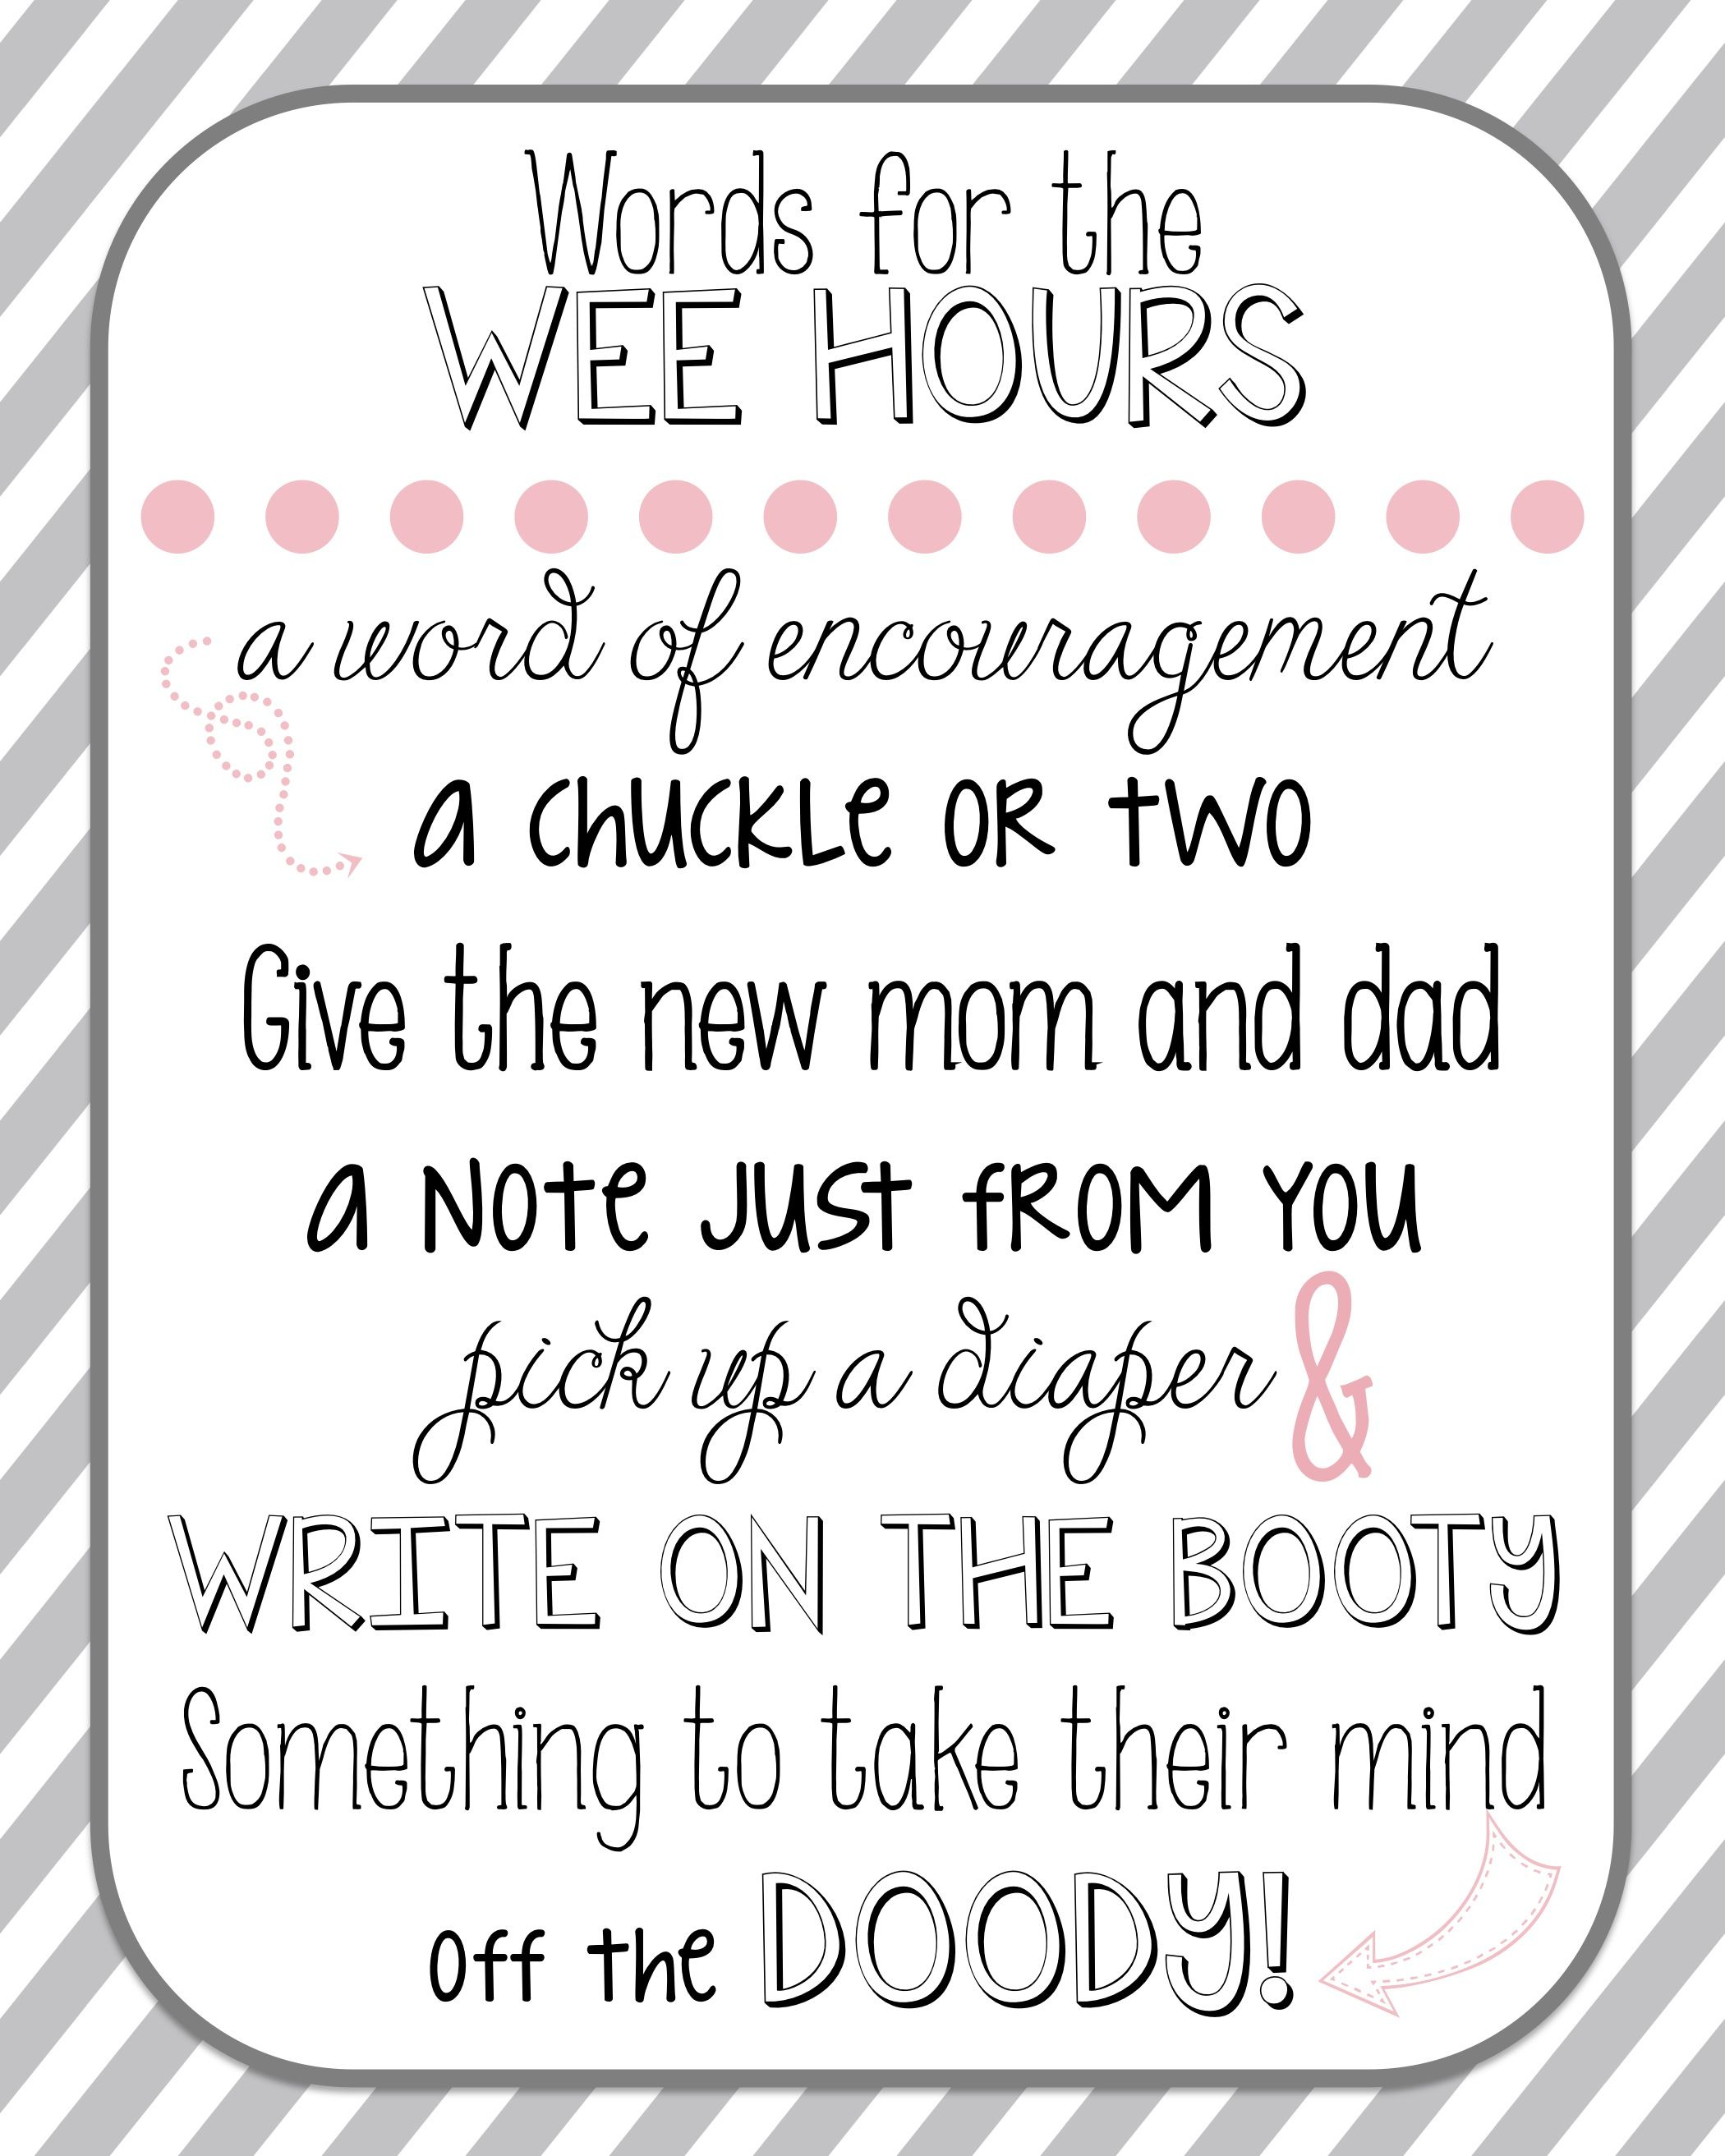 photograph regarding Words for the Wee Hours Free Printable identify Diaper notes for little one shower printable! Too readily available in just